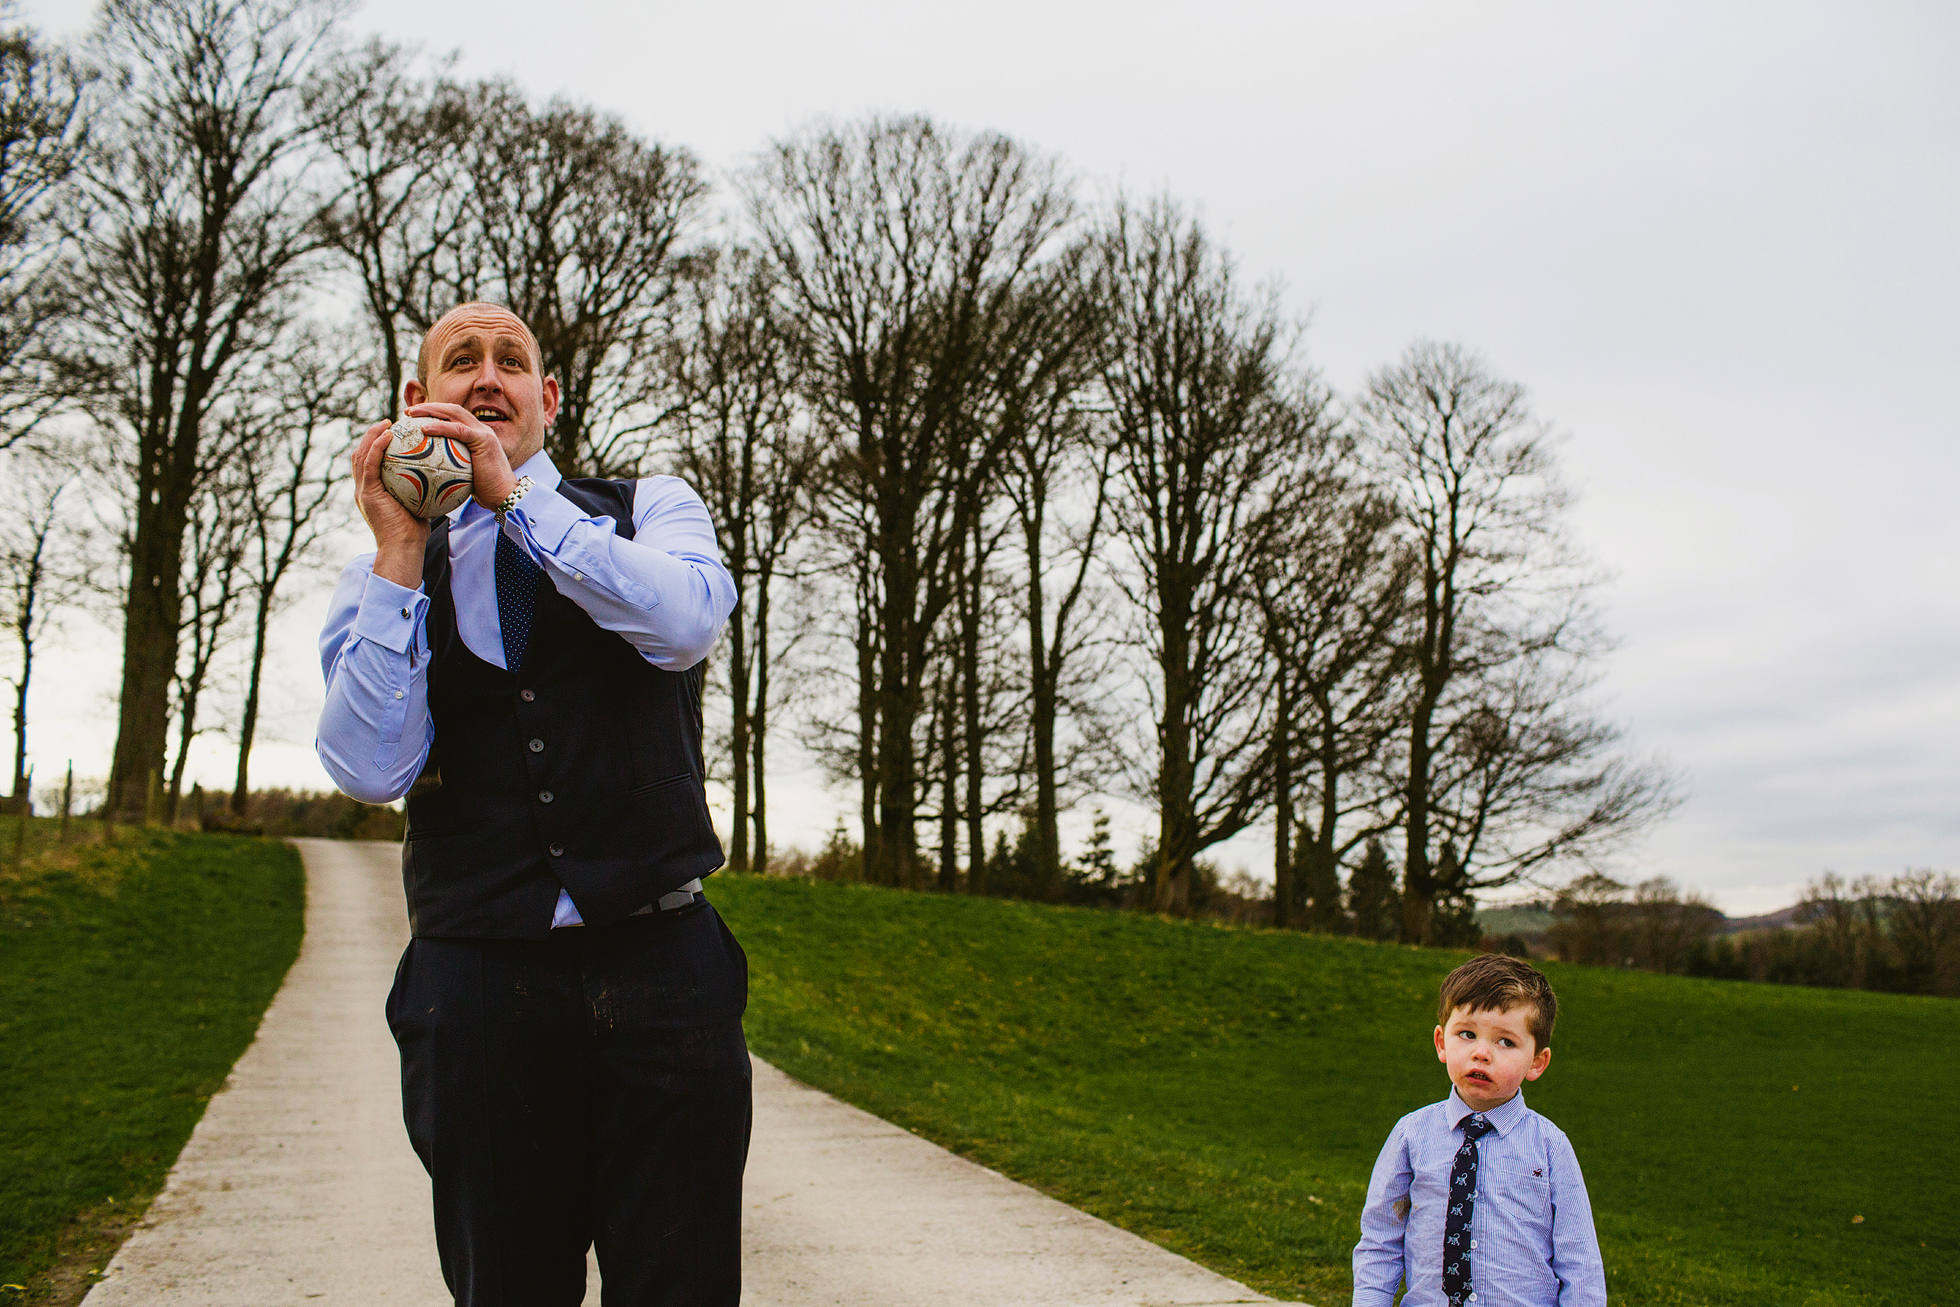 Wedding Photography with the Leica M